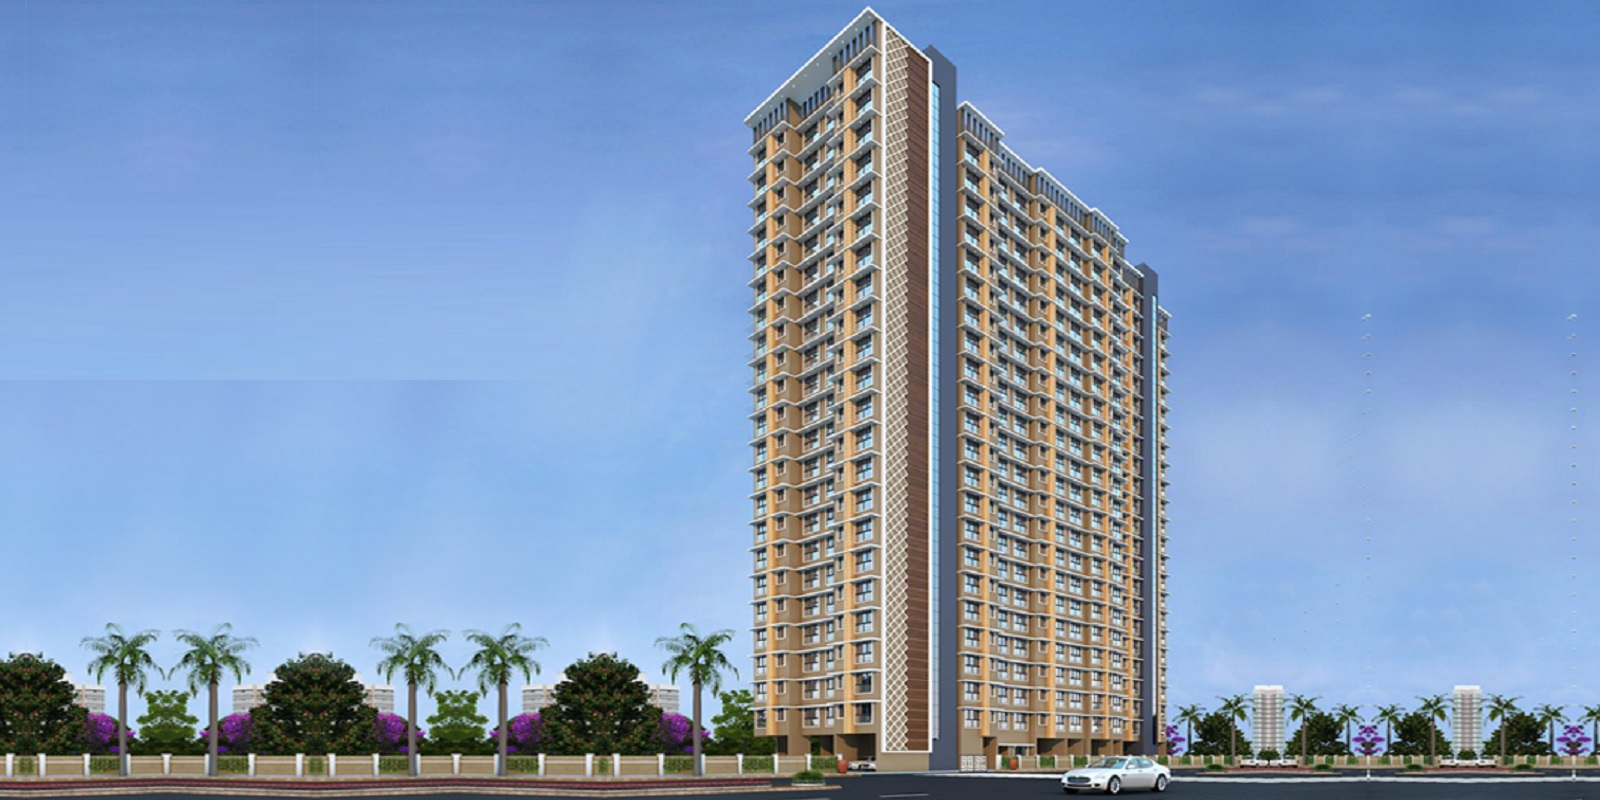 anant tara project project large image1